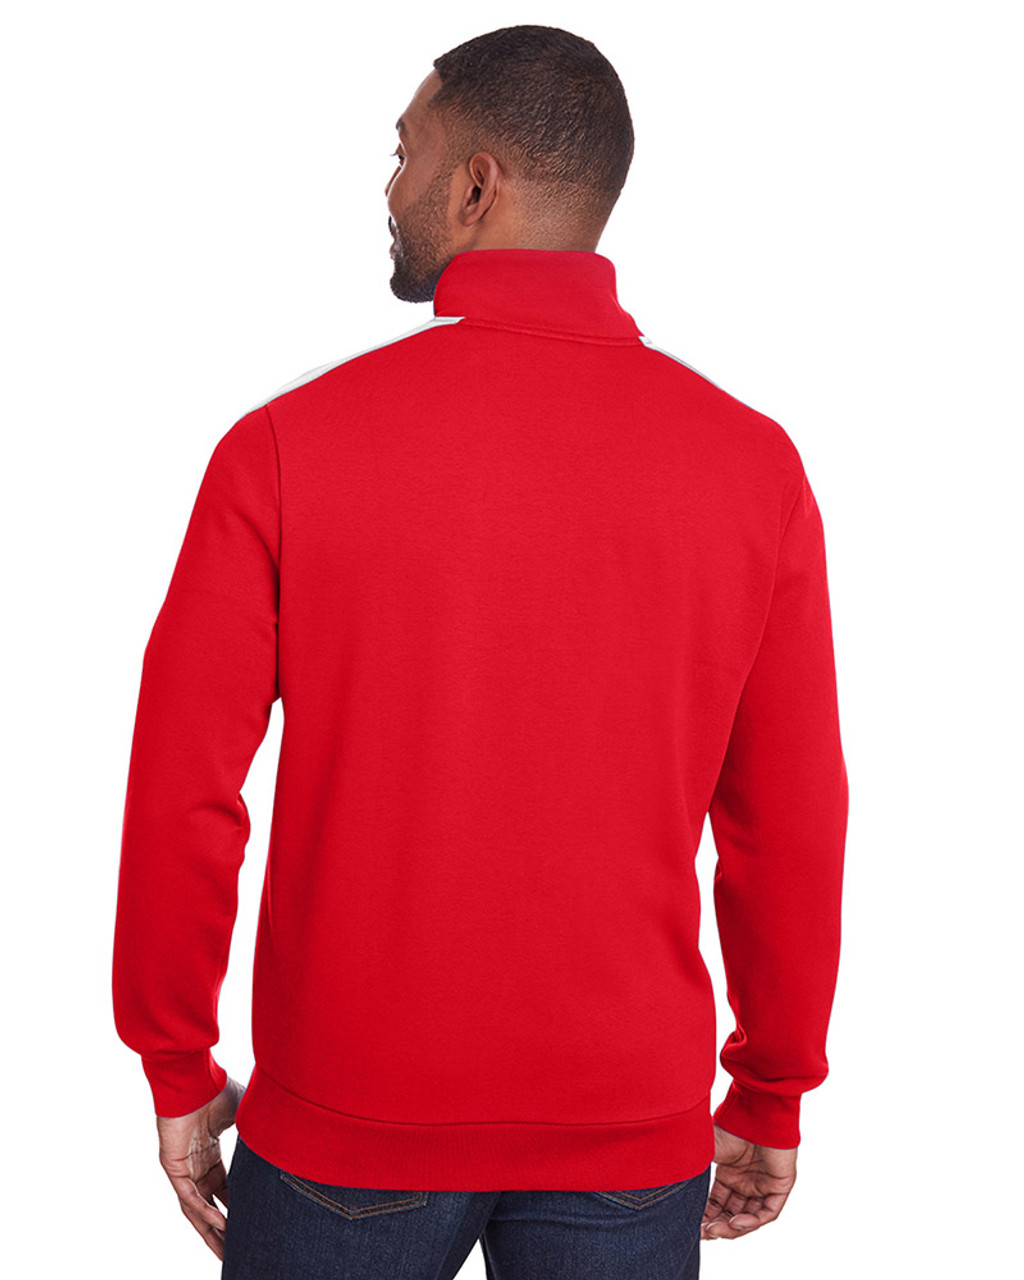 High Risk Red/Puma White - back, 597021 Puma Sport Adult P48 Fleece Track Jacket | Blankclothing.ca